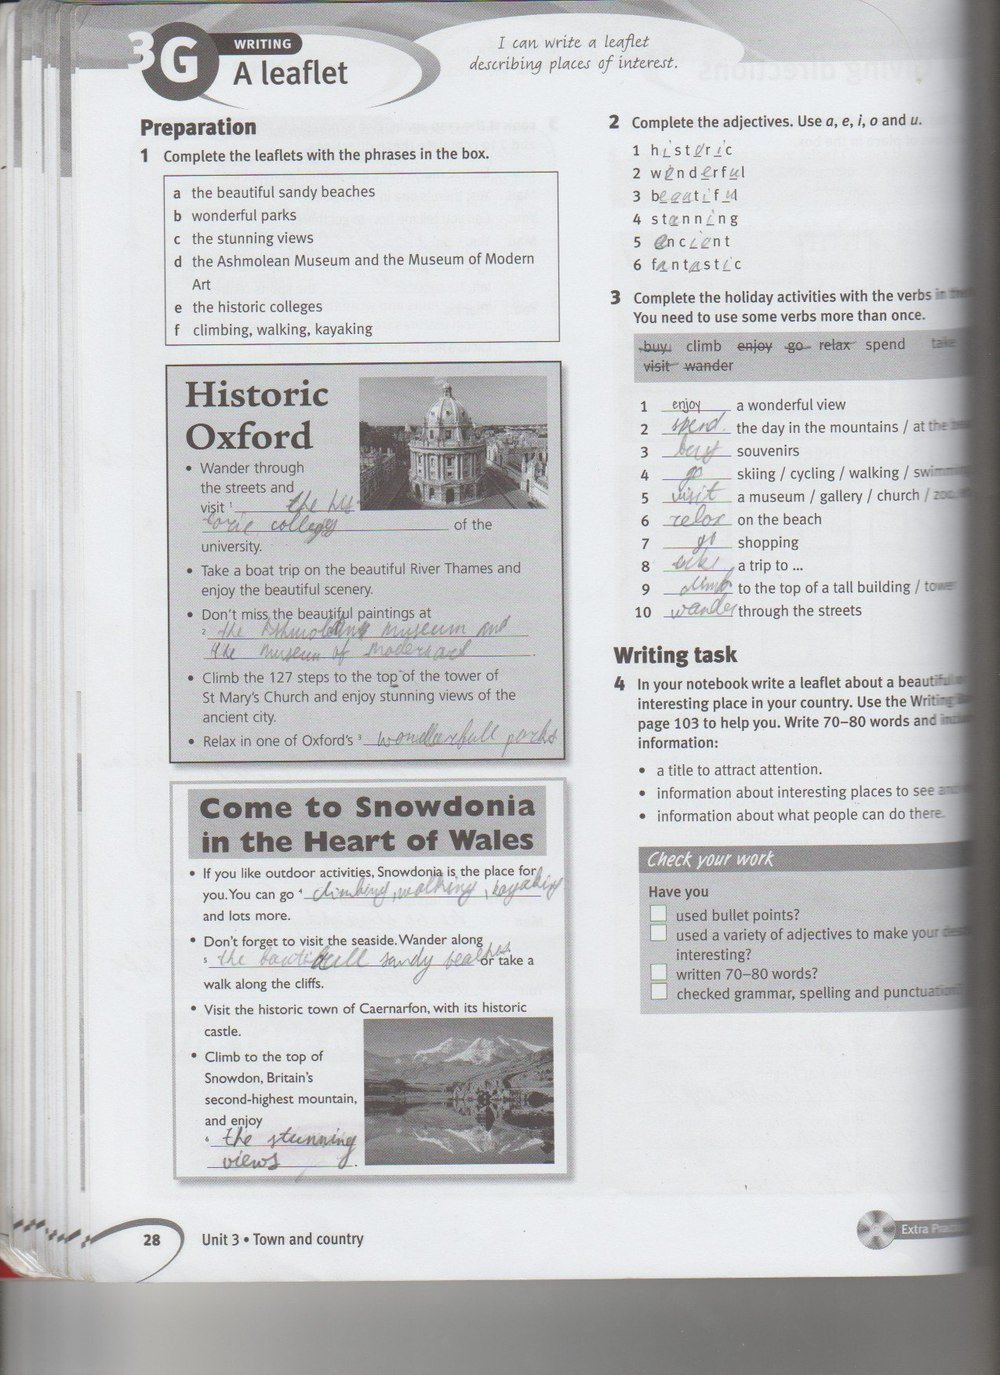 workbook 4 7 solutions Textbook solutions  note  some of these files may meld into each other, so if you're missing part of 12, check at the end of 11, etc.